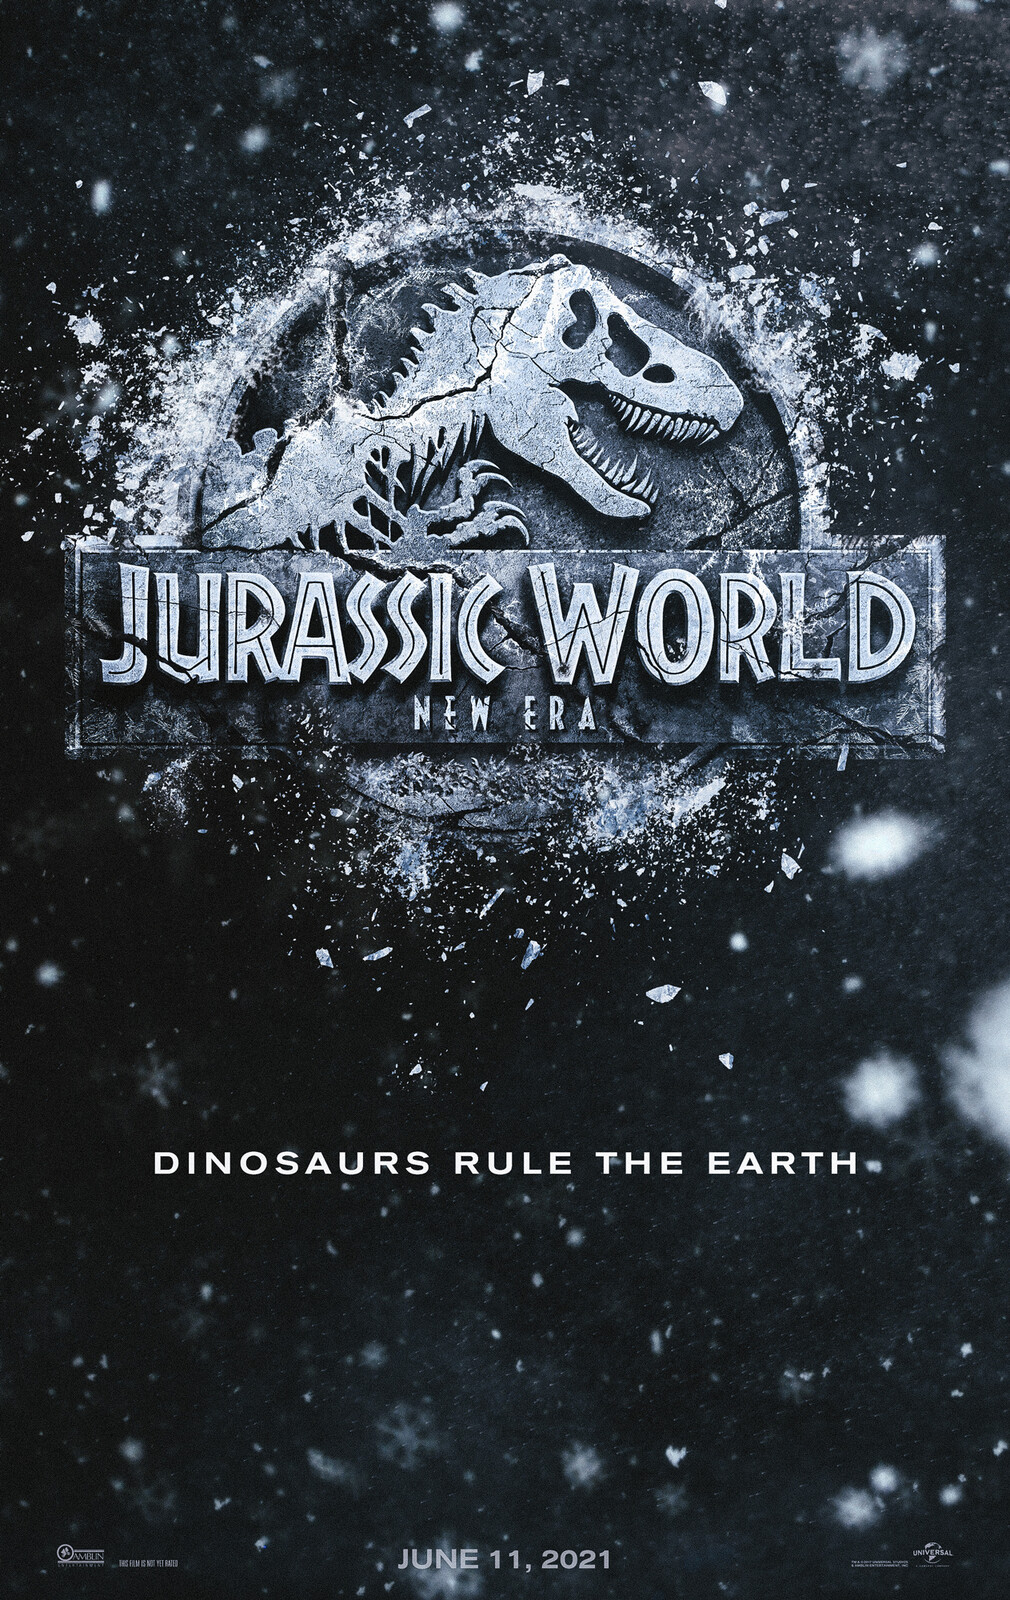 Jurassic World 3 - Jurassic World New Era - Movie Poster and Logo Concept